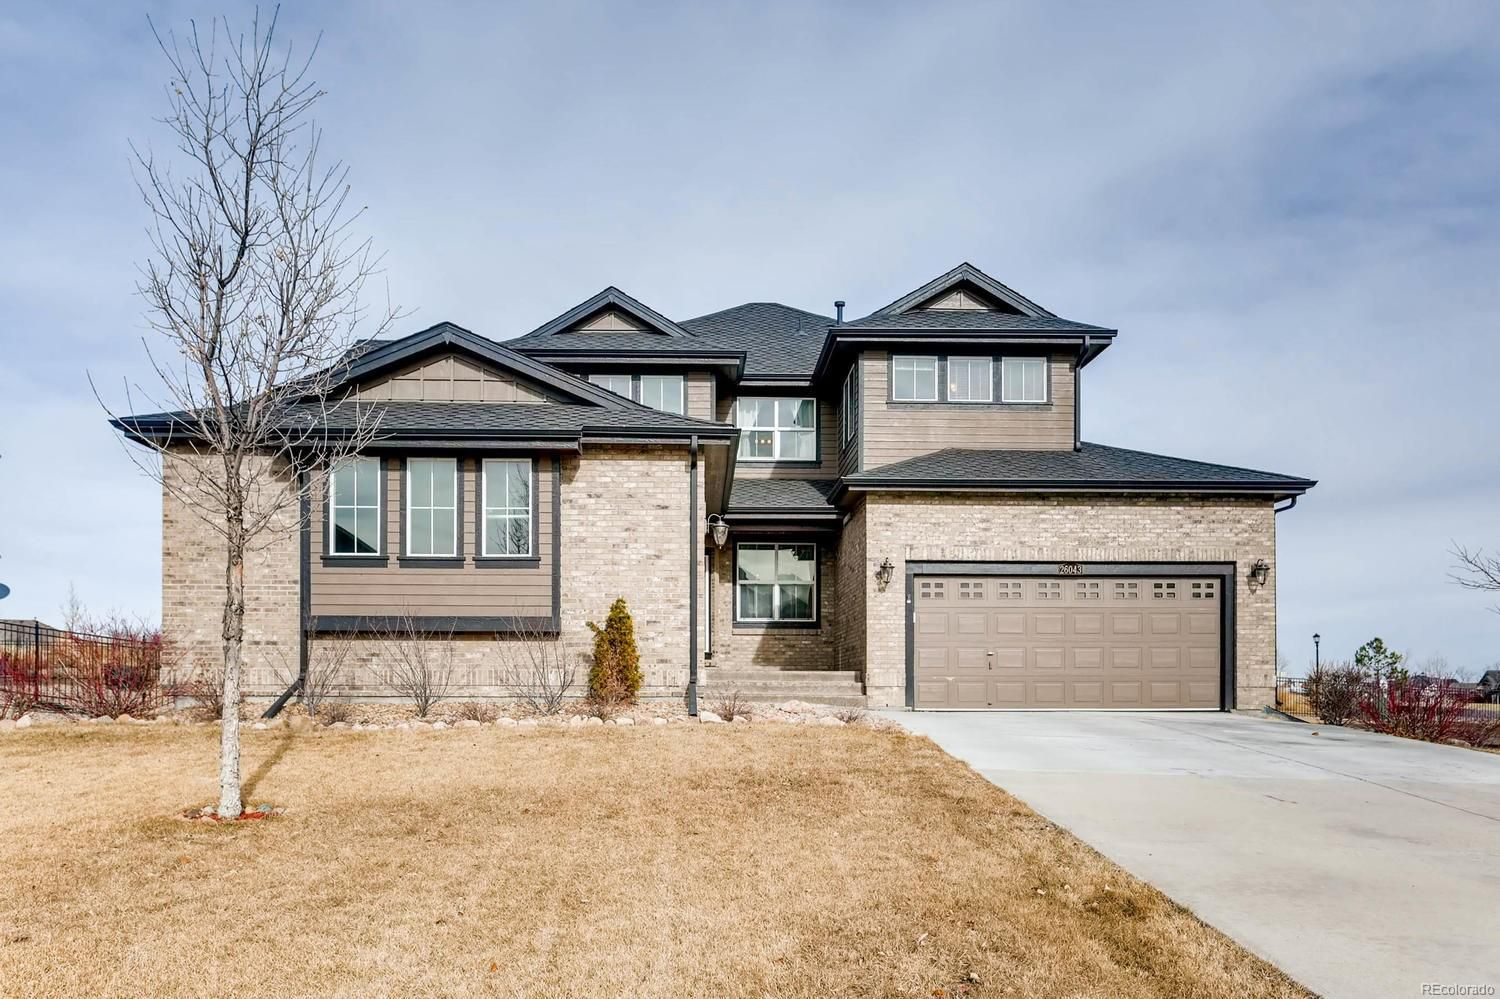 26043 E Elmhurst Pl, Aurora. Click for more photos and pricing